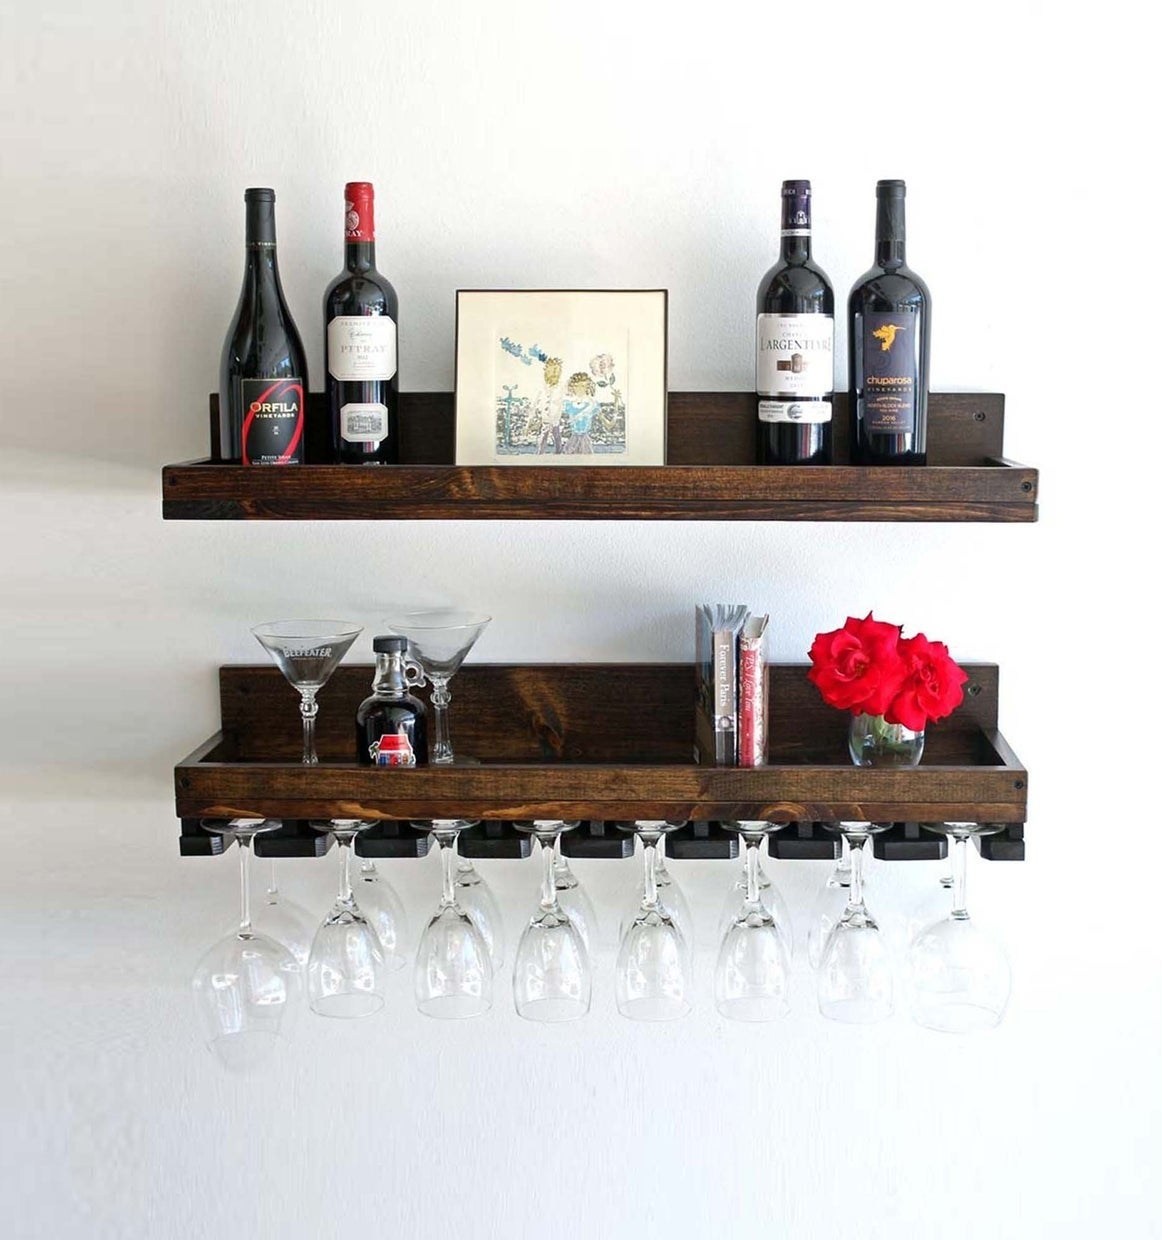 One rack that's a simple shelf on the wall and another rack that's a shelf with nooks for hanging wine glasses upside down